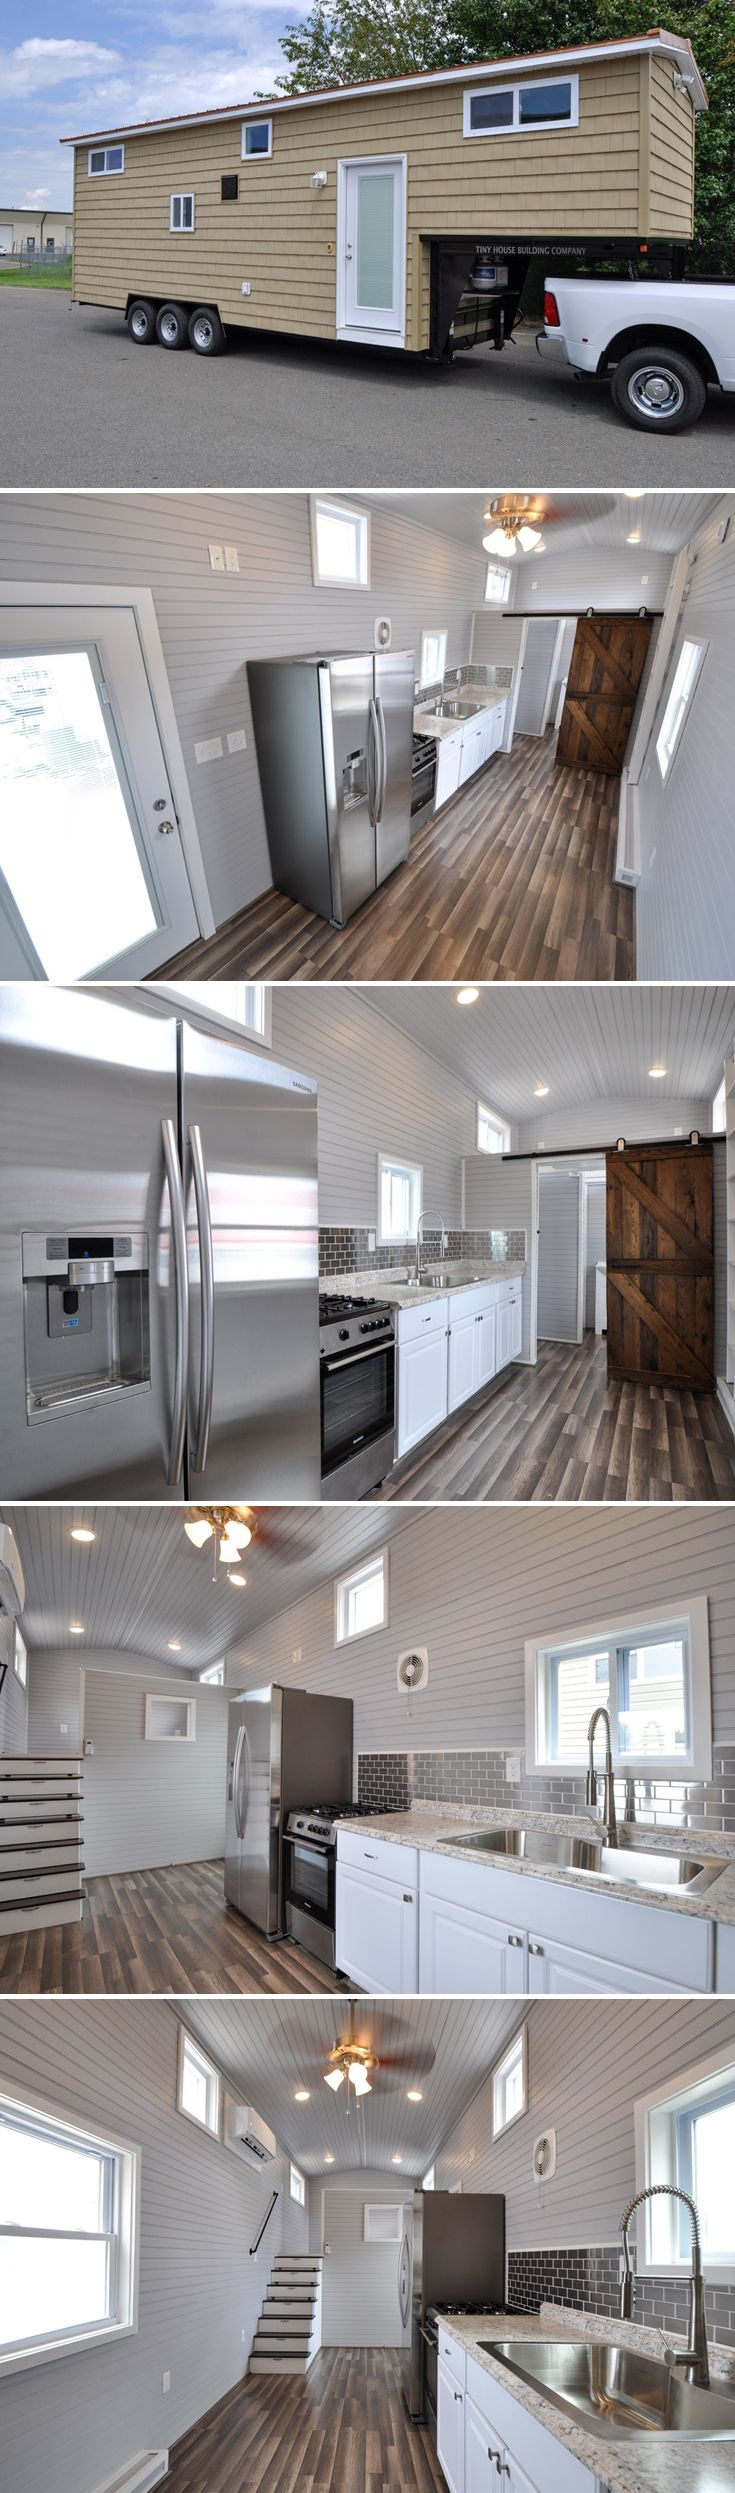 The 340-square-foot Brooke has a full glass entry door with built-in blinds, full size appliances, and a king size master bedroom above the gooseneck.